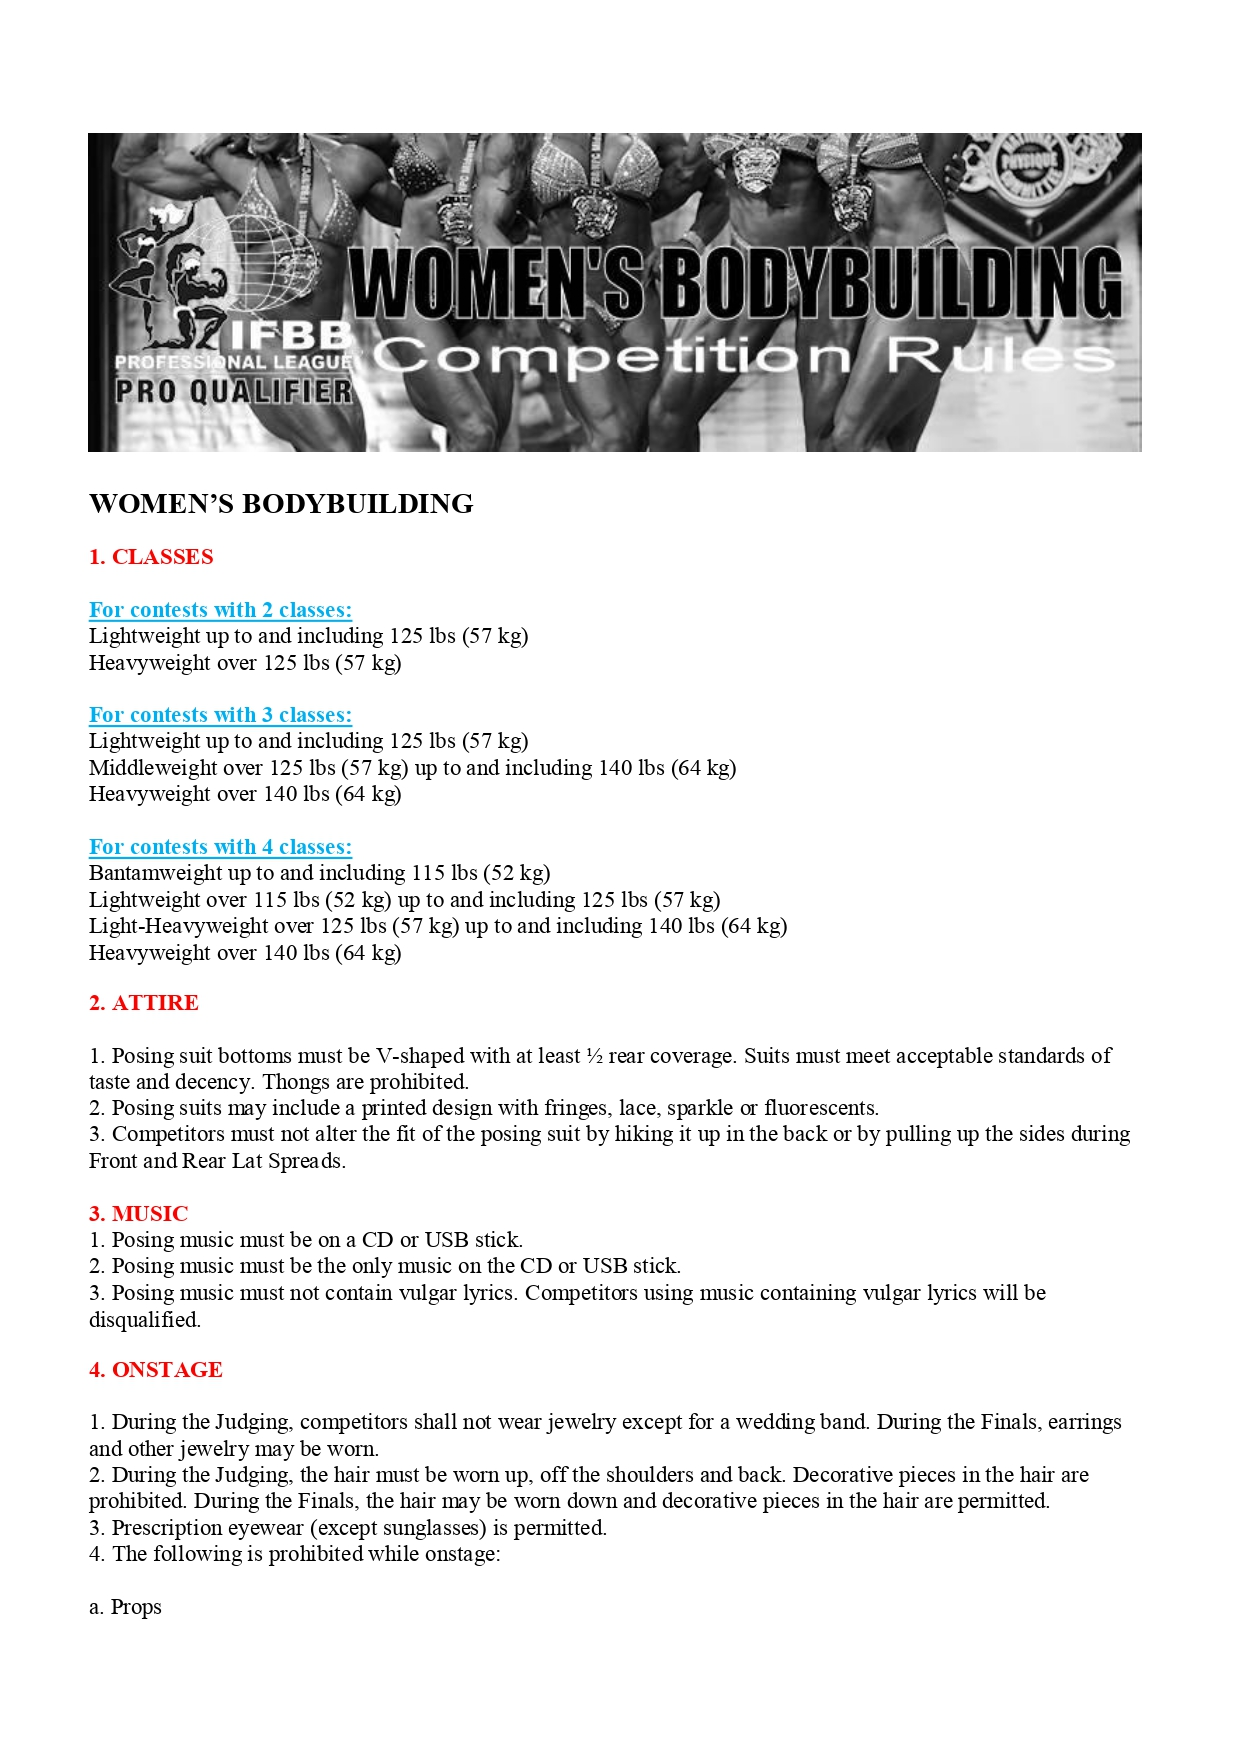 IFBB-rules_page-0018